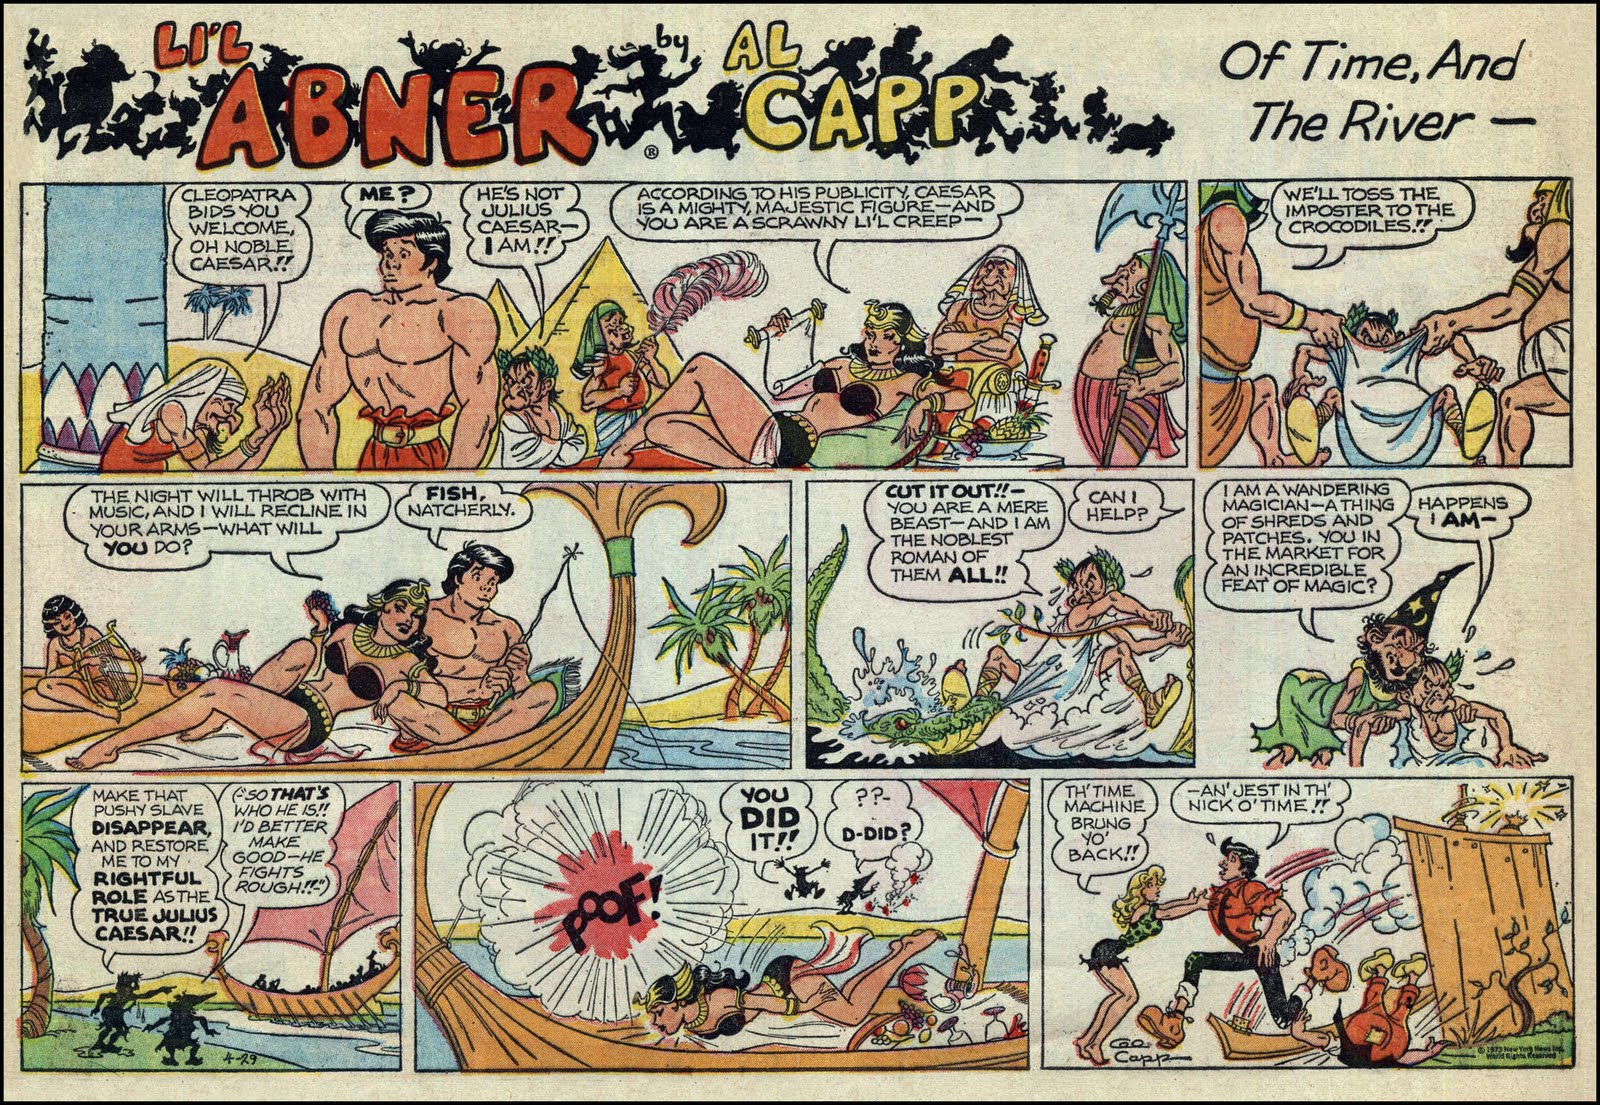 Lil abner comic strip character joe